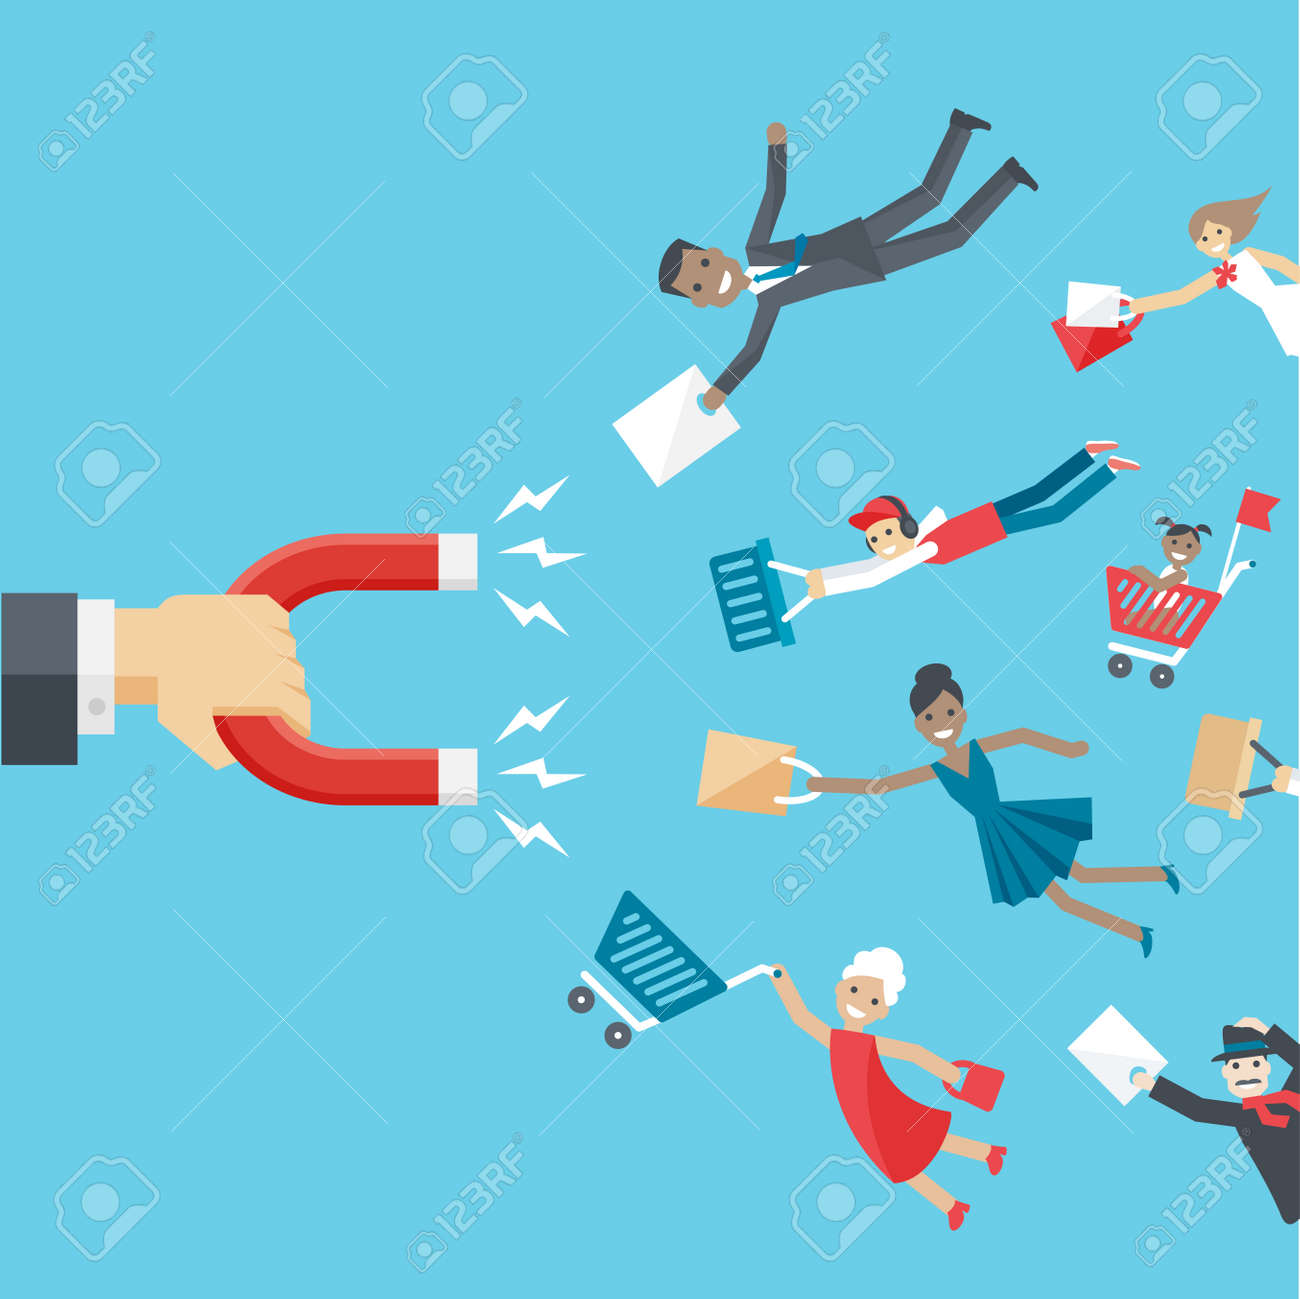 business conceptual background in flat style. The hand of businessman holding magnet and attracts happy customers or clients of different age and race to the business. - 50634846